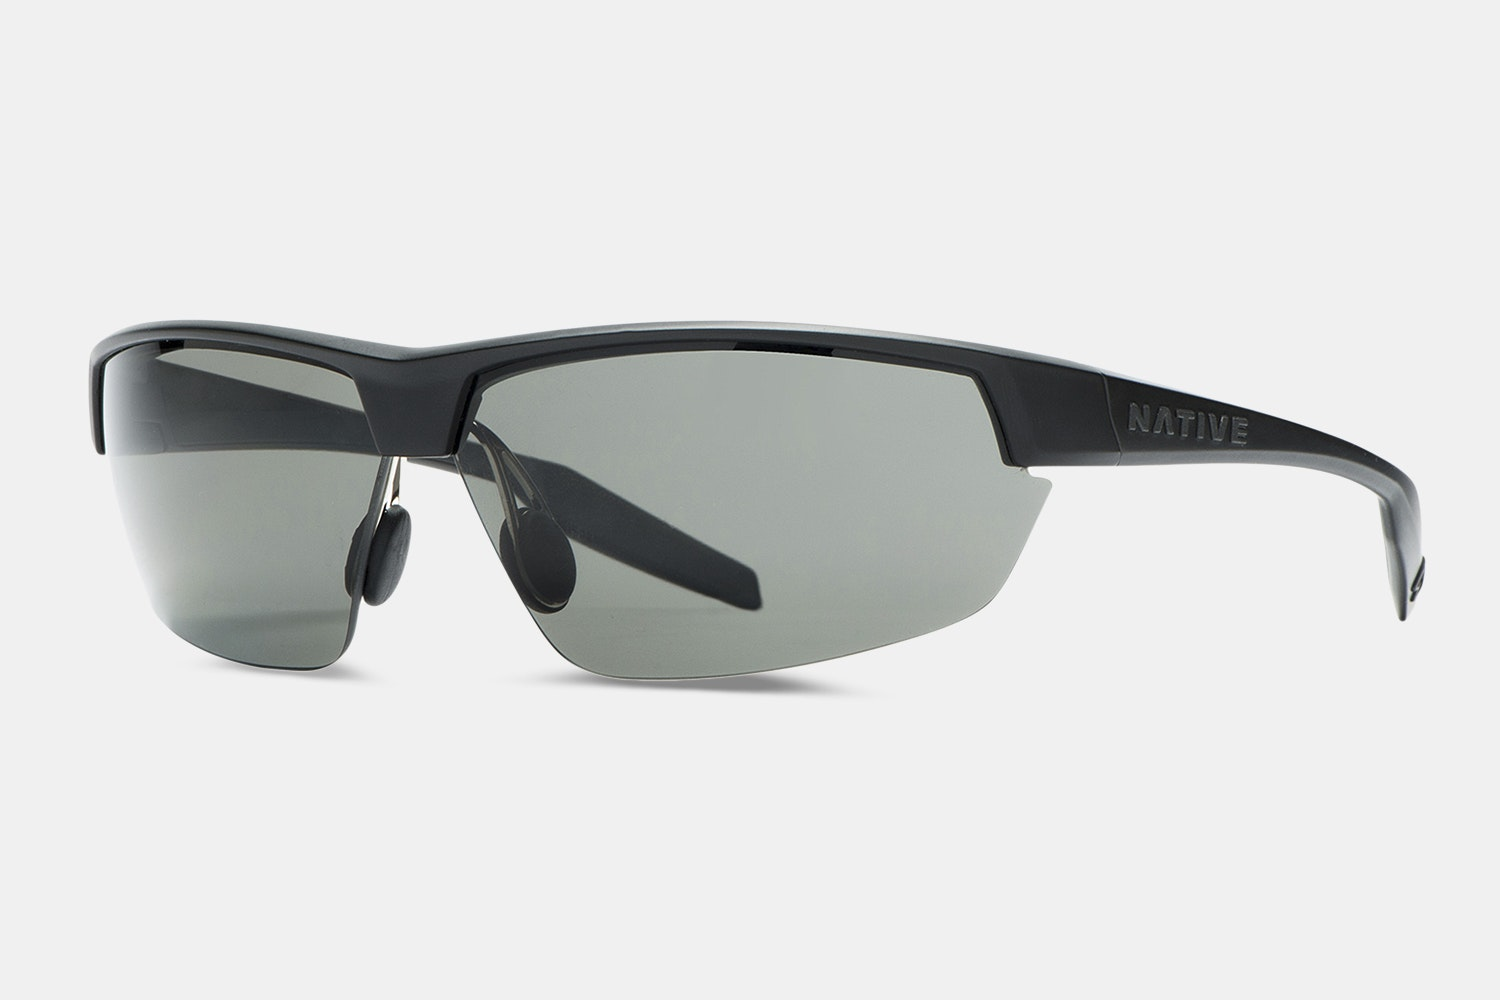 Native Eyewear Hardtop Ultra Sunglasses